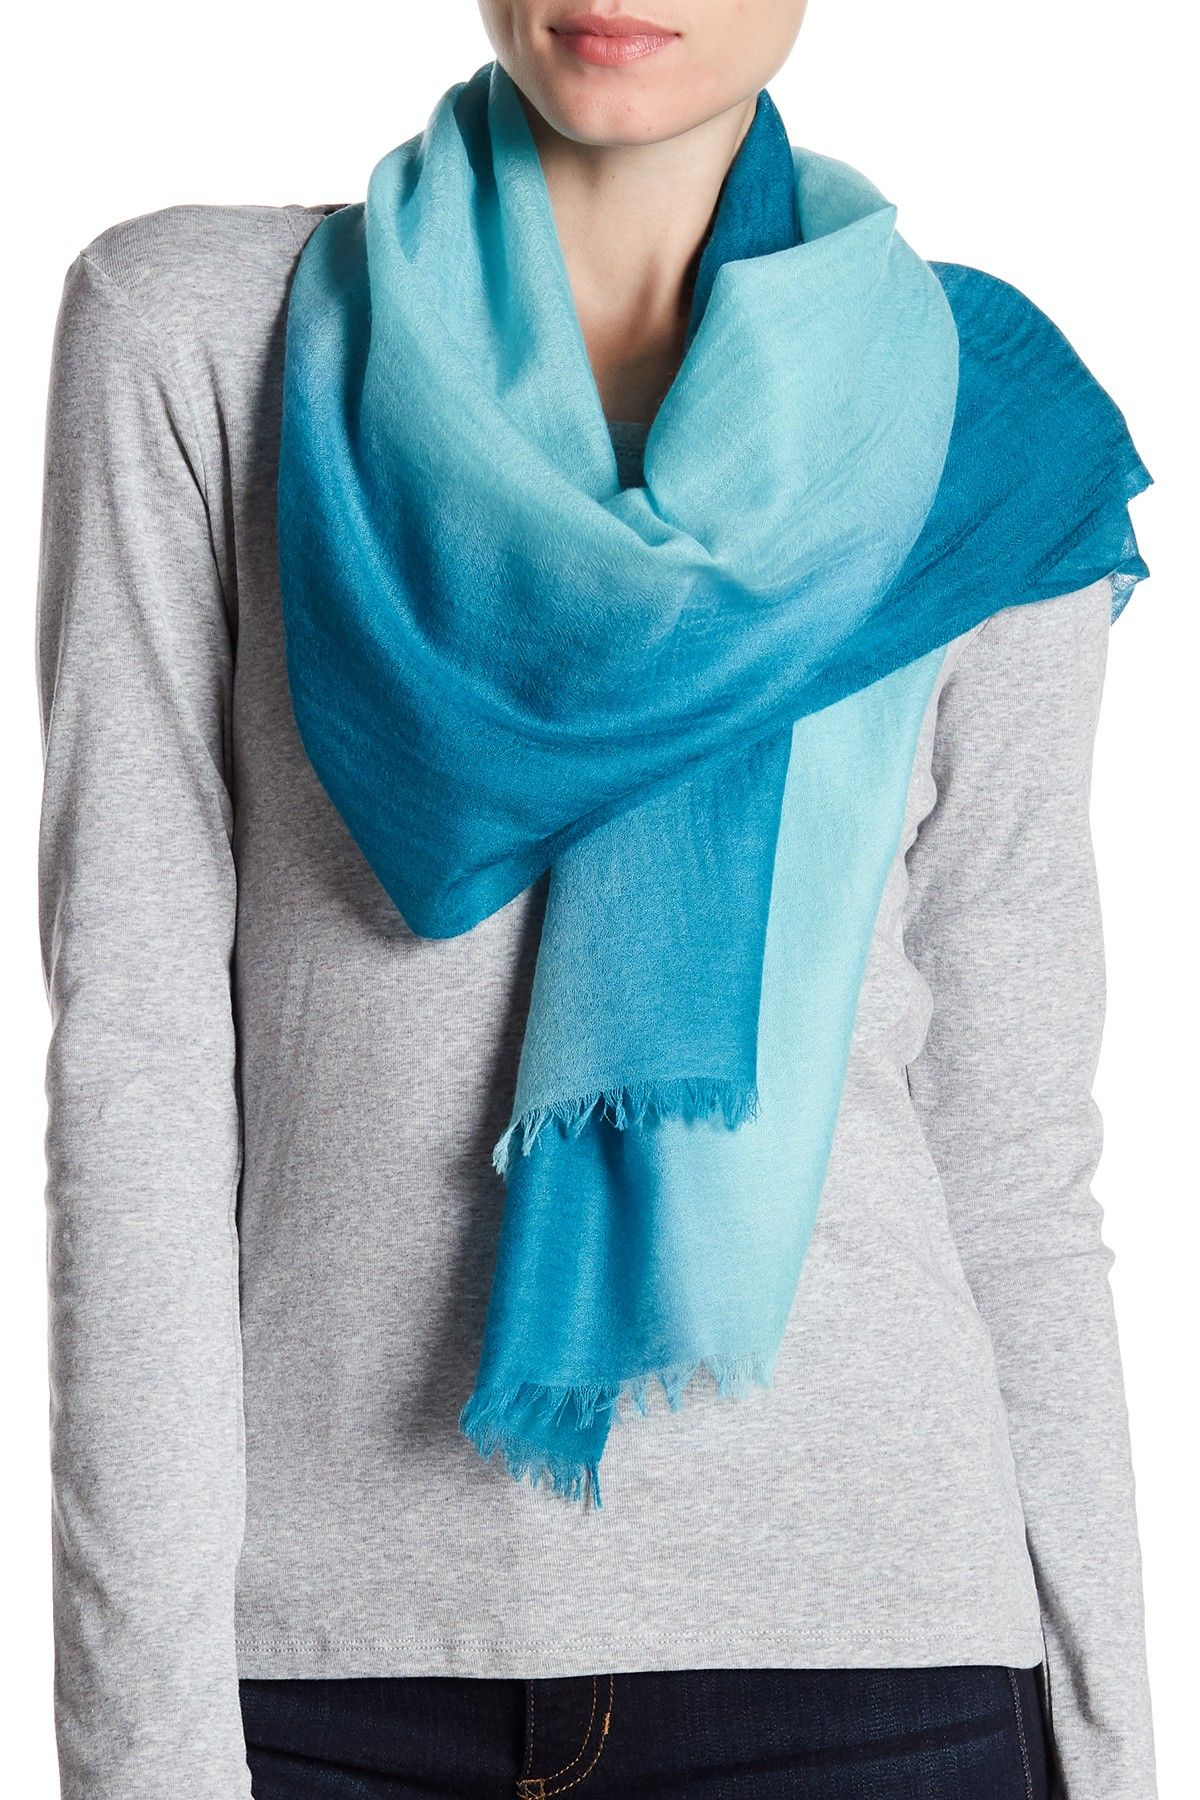 amicale | lightweight cashmere dip dye scarf | dip dyed, cashmere